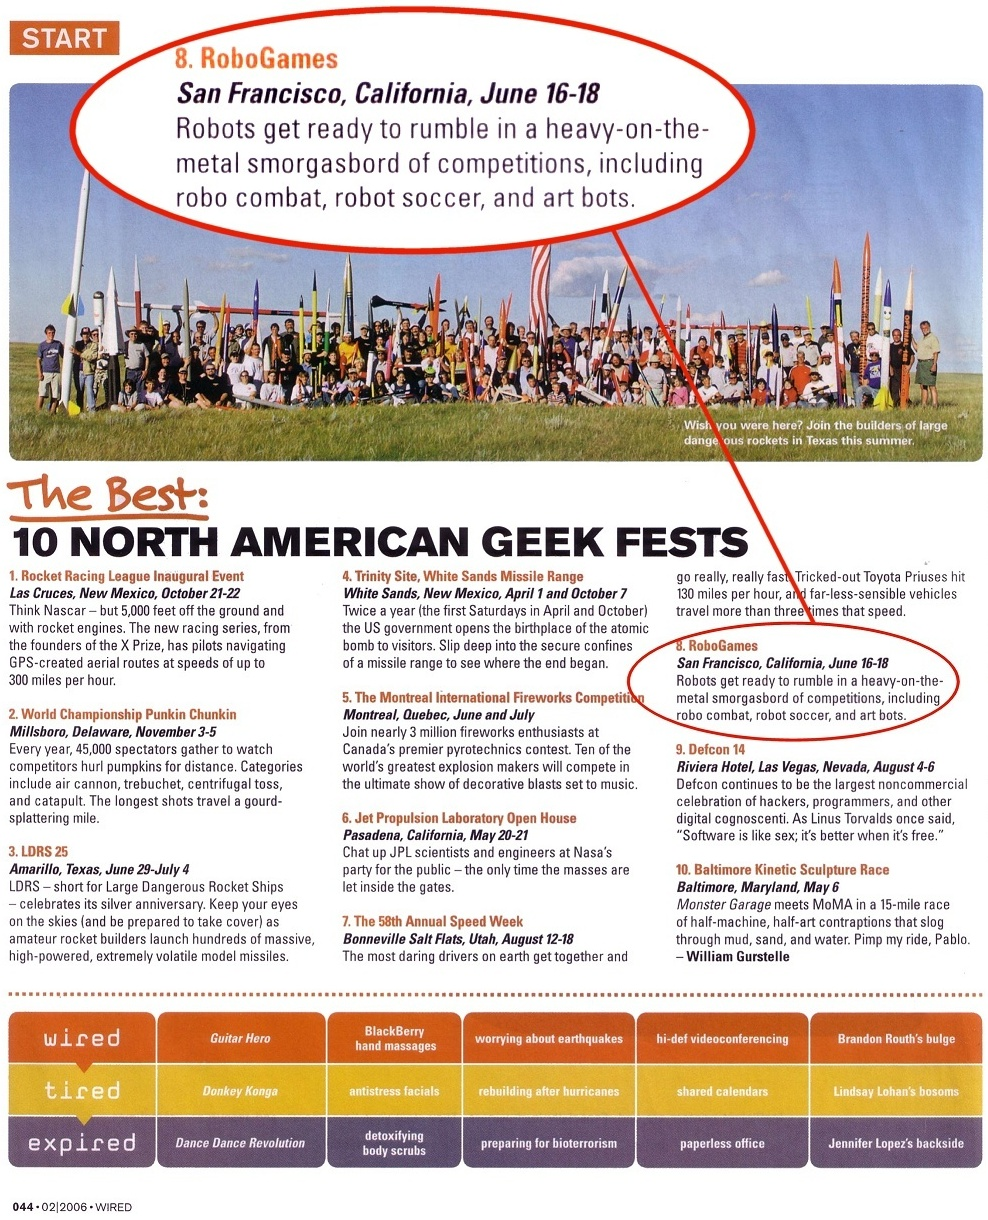 Wired Magazine: The Best Ten North American Geek Fests